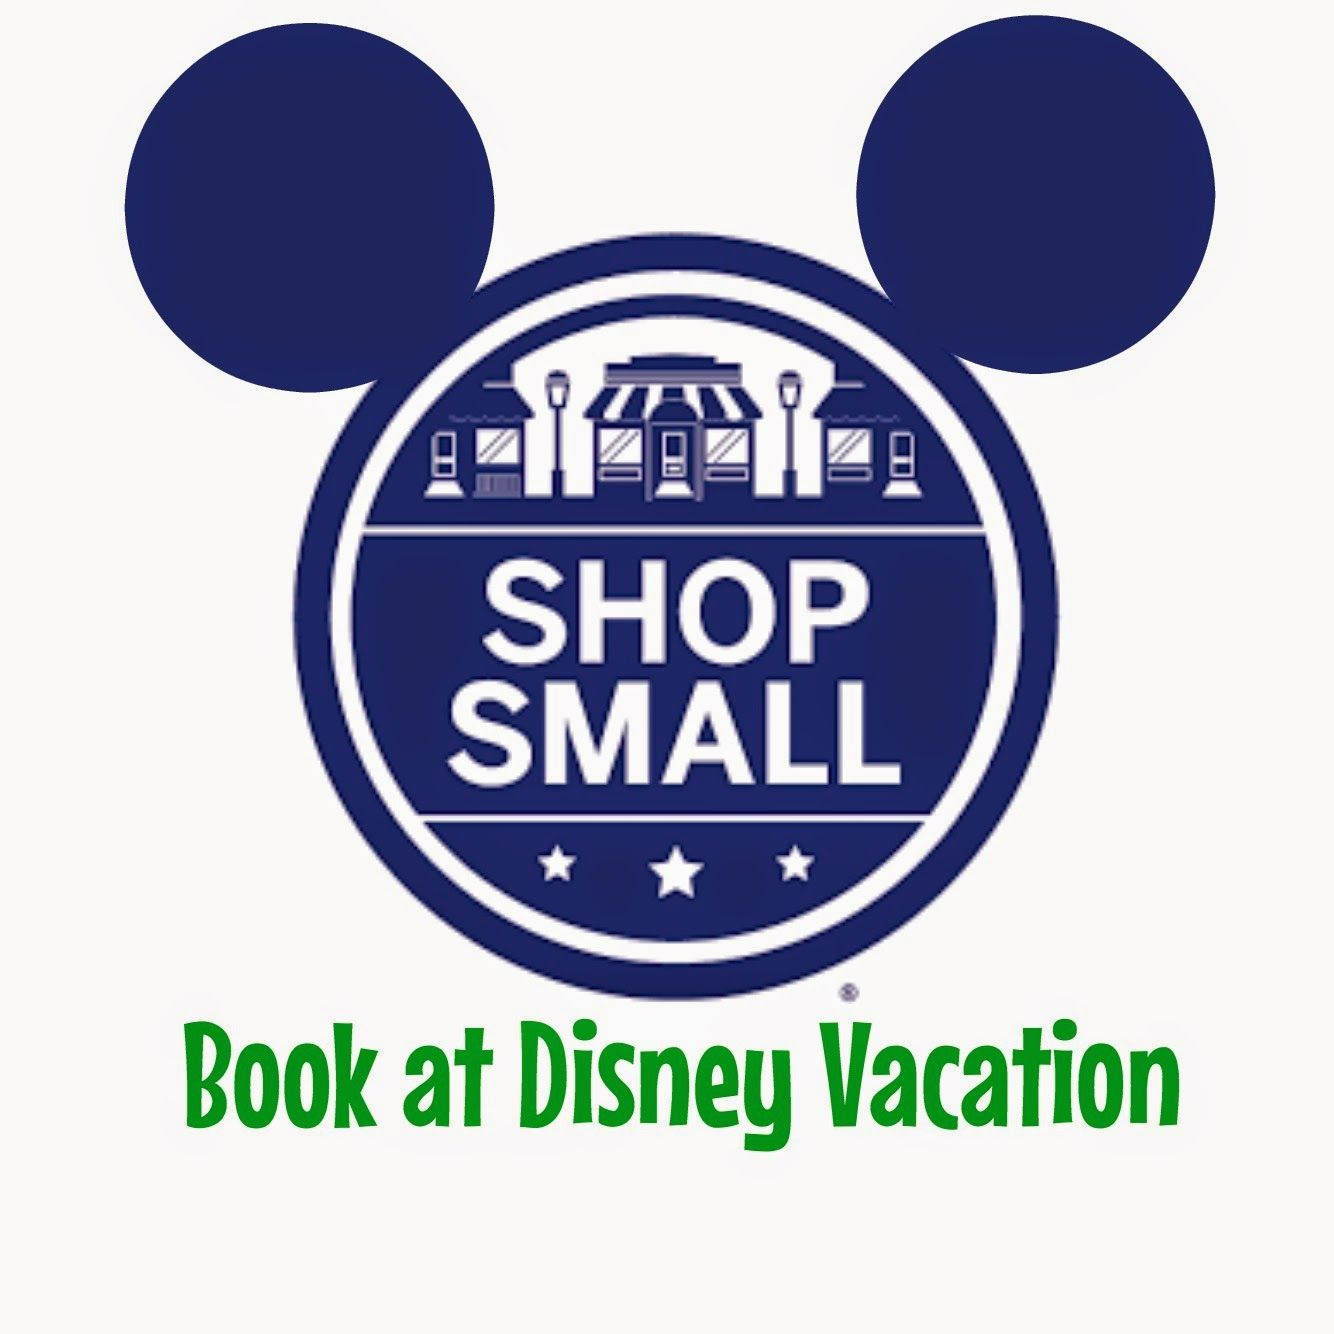 Support Small Business and Book a Disney Vacation! Disney